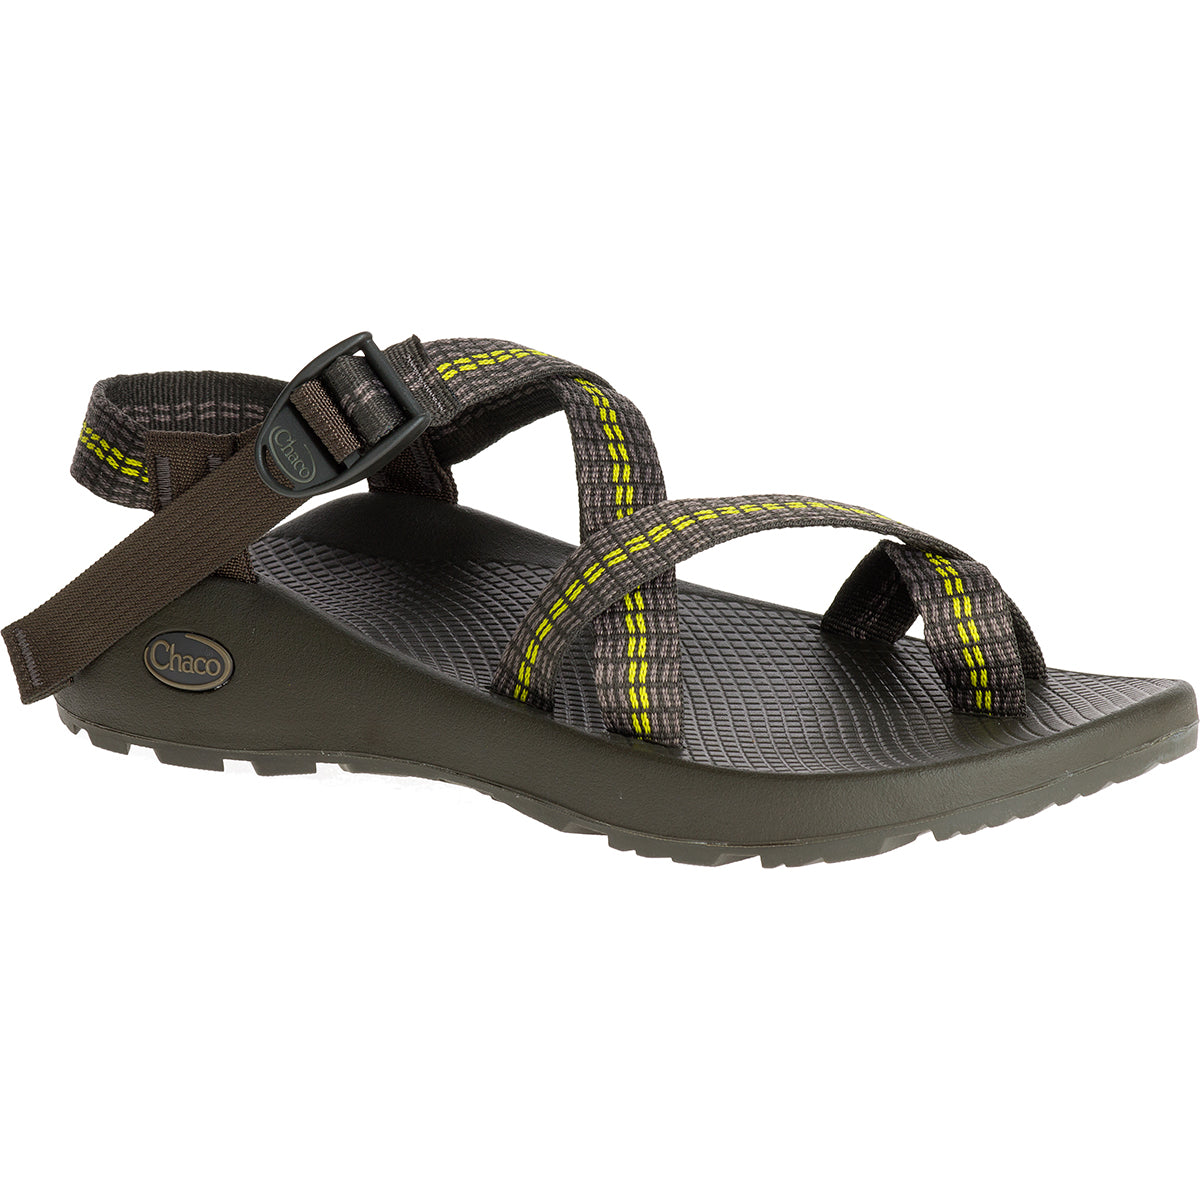 Chaco Men's Z1 Classic Athletic Sandal